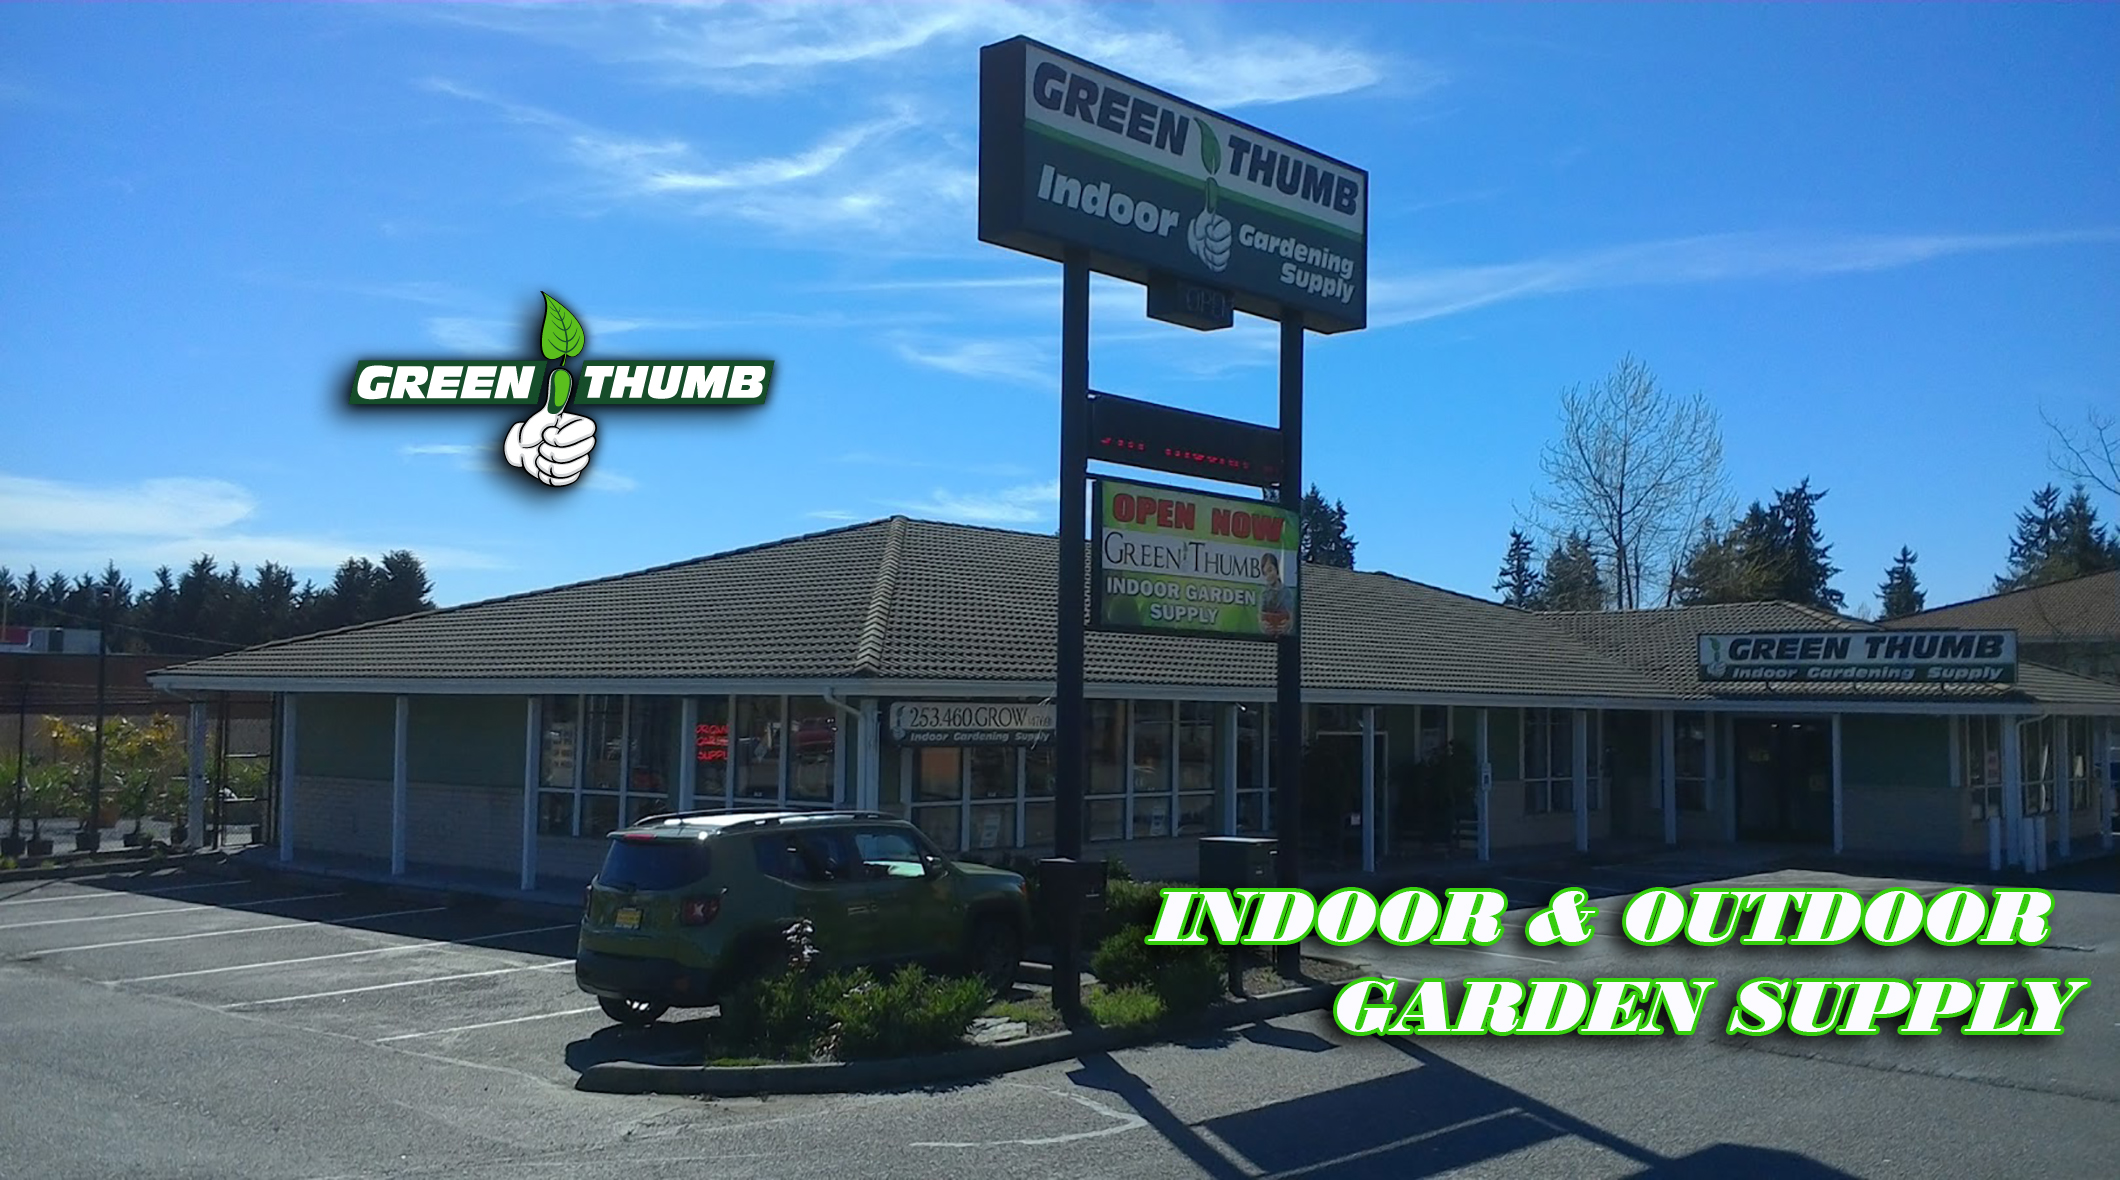 Exceptionnel Green Thumb Indoor Garden Supply 10120 128th Street Ct E, Puyallup, WA  98373   YP.com